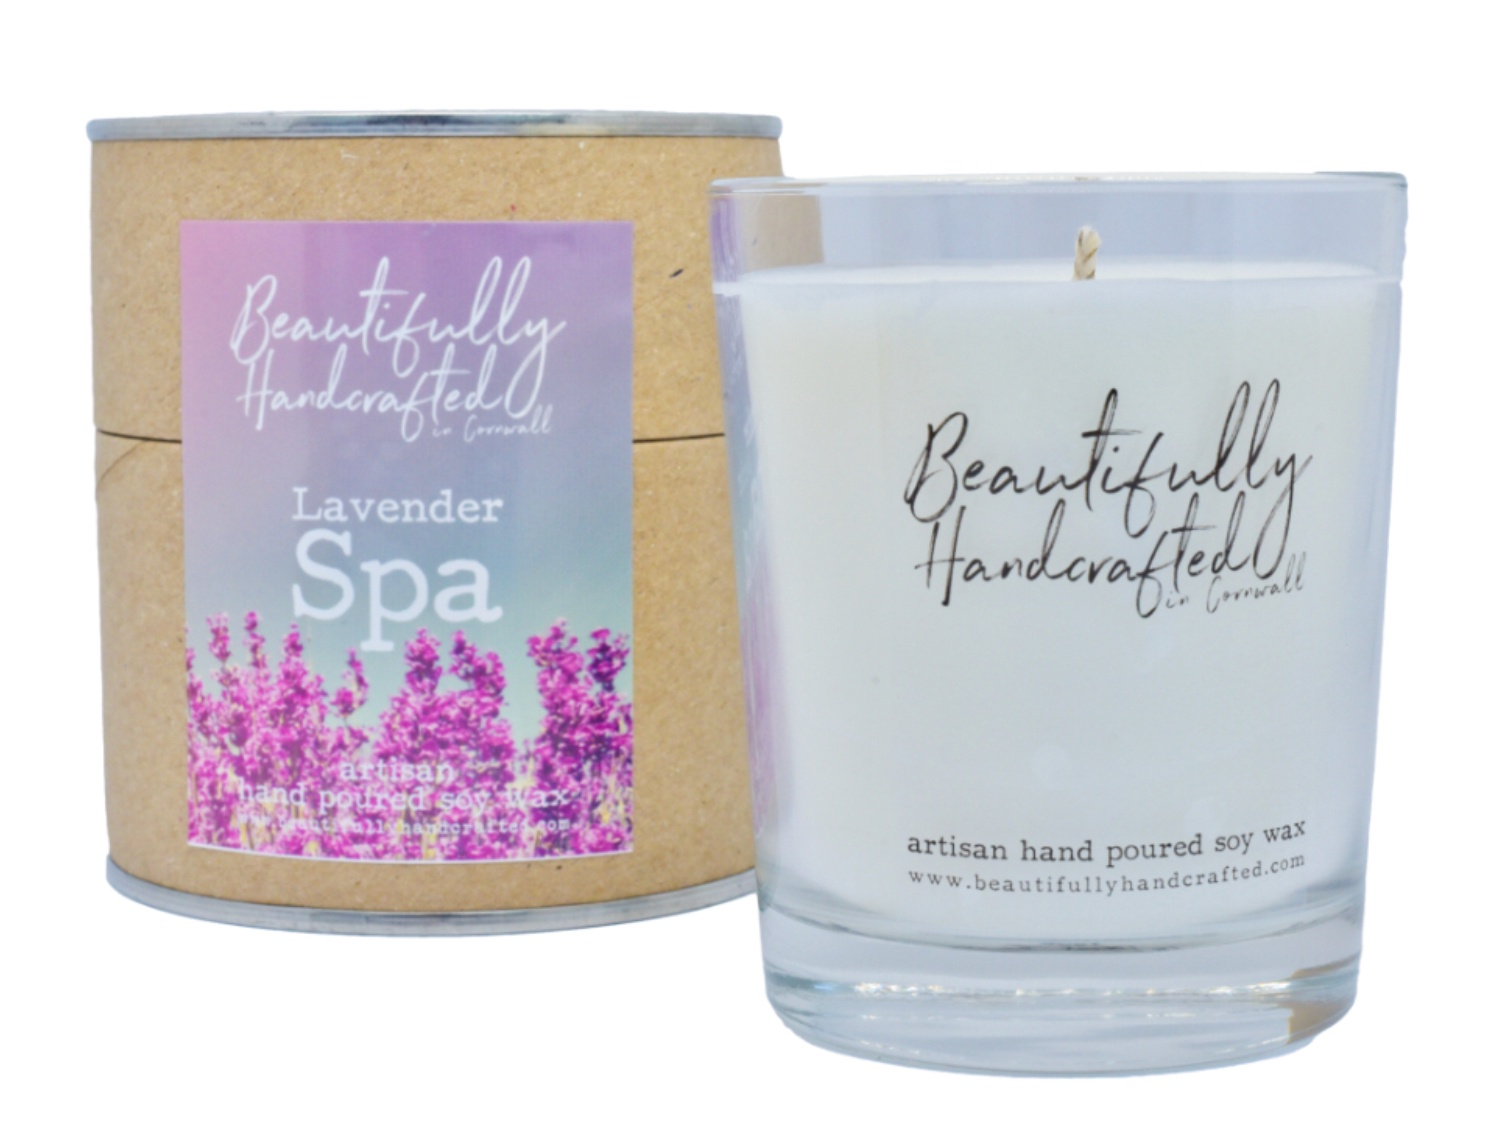 Beautifully Hand Crafted Lavender Spa Jar Candle